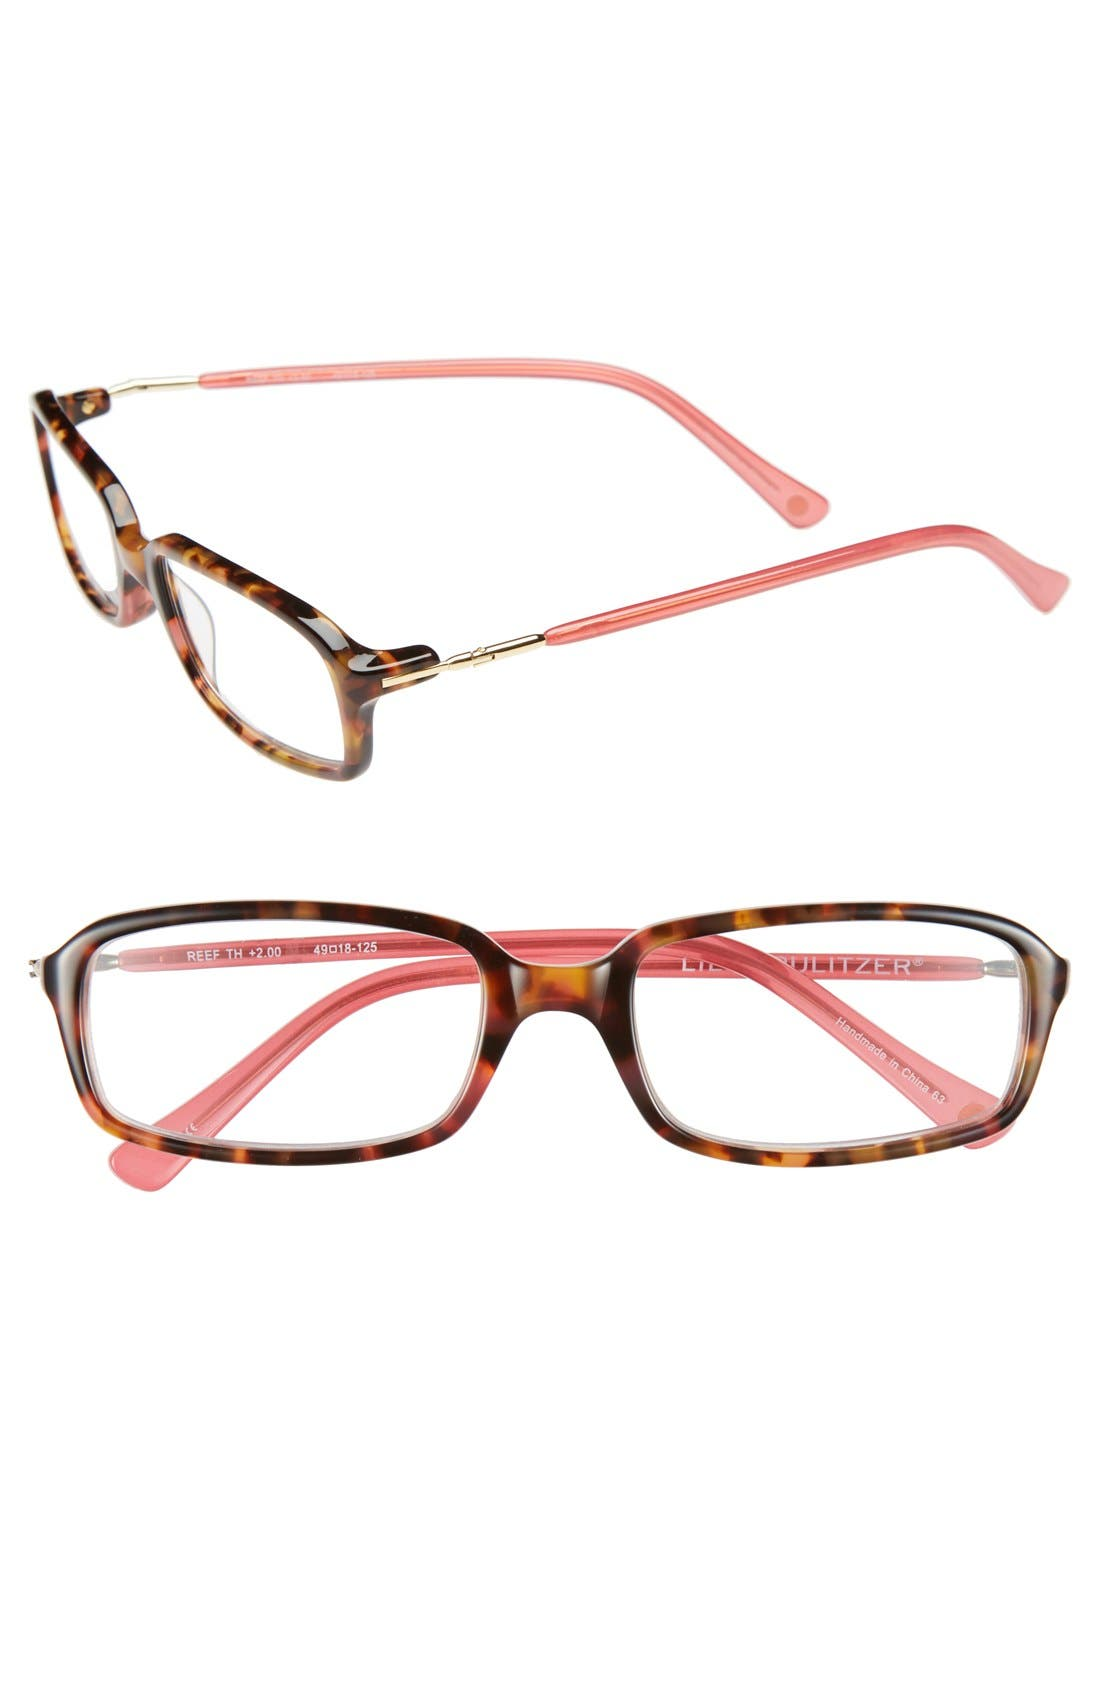 Alternate Image 1 Selected - Lilly Pulitzer® 'Reef' 49mm Reading Glasses